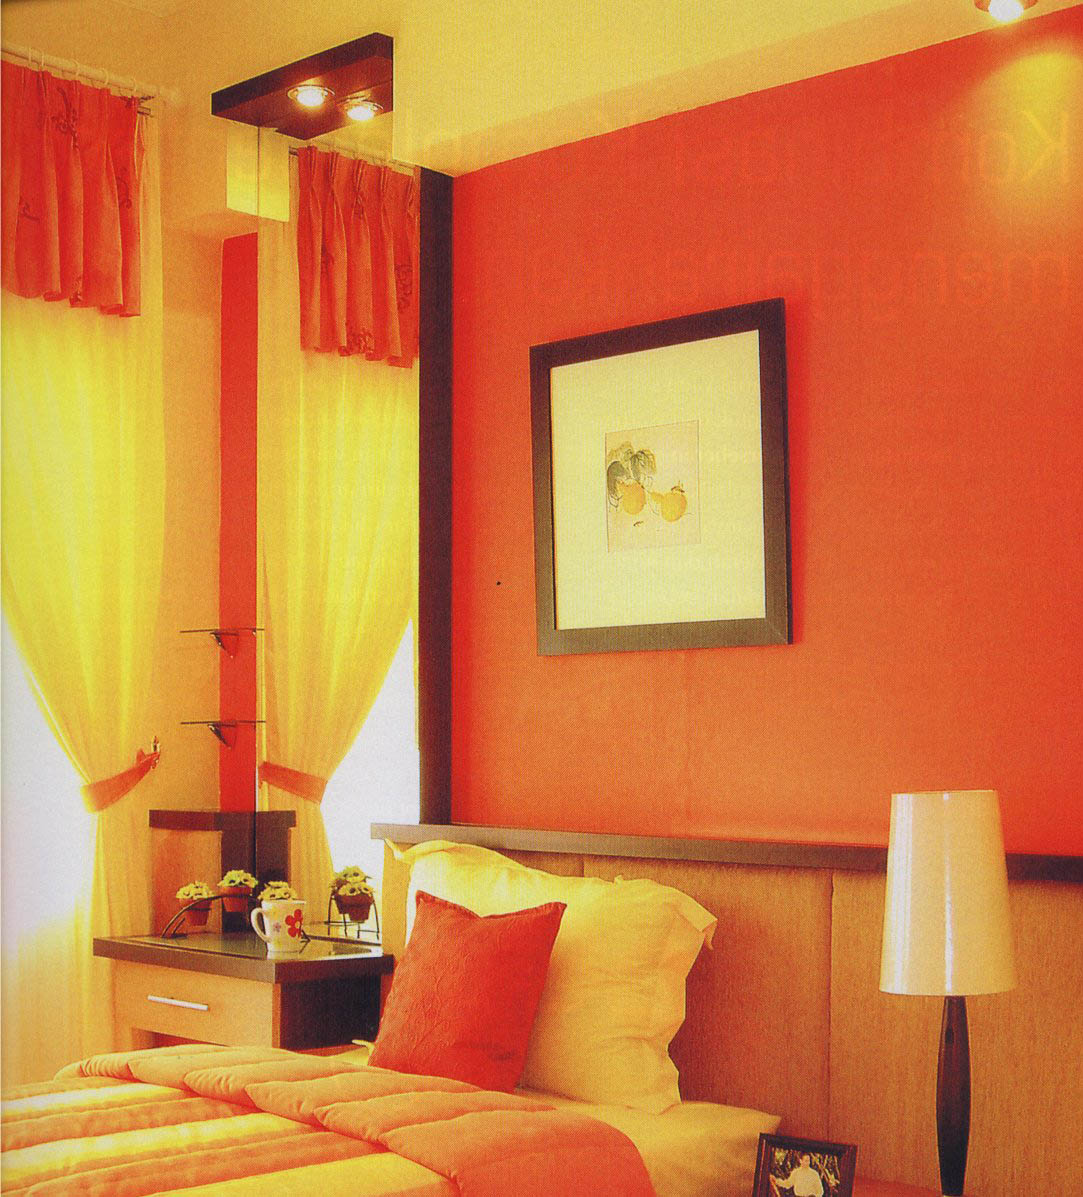 Bedroom painting ideas popular interior house ideas for Interior house painting ideas photos